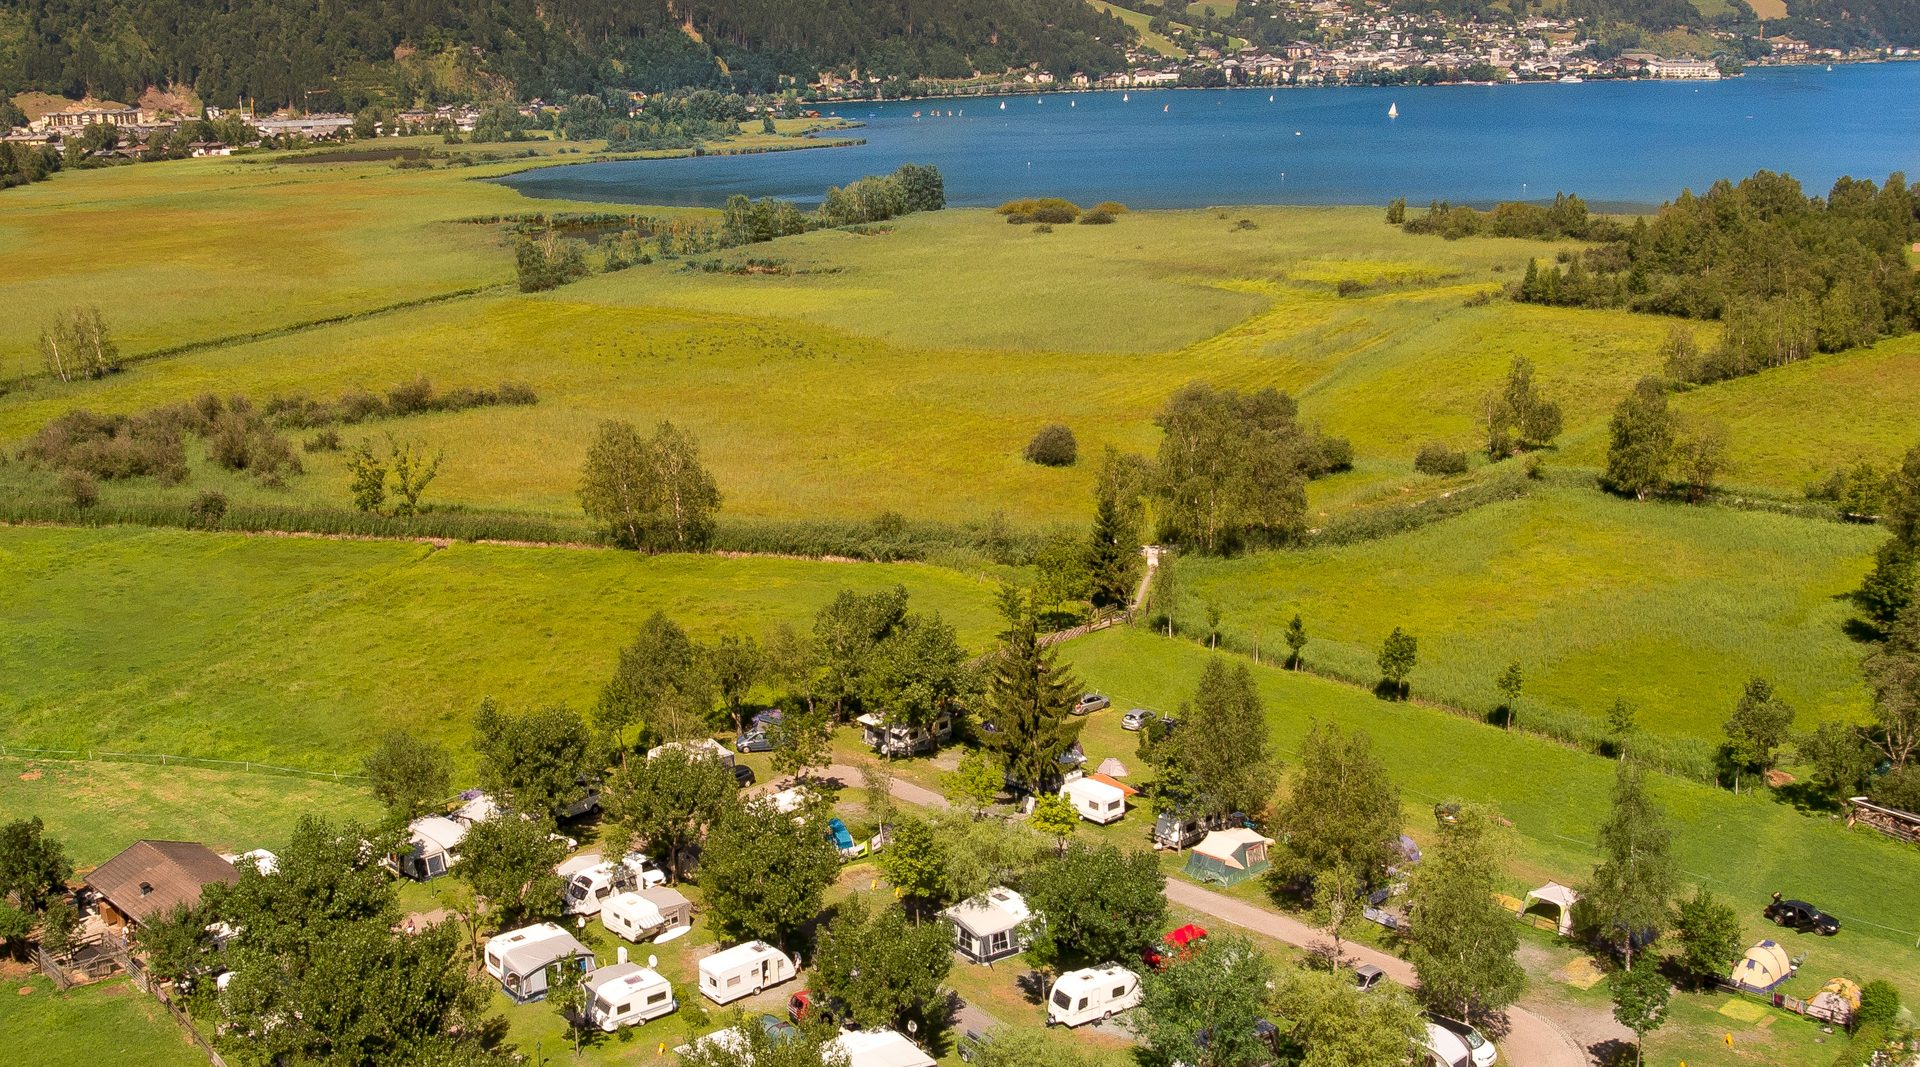 Camping at lake Zell